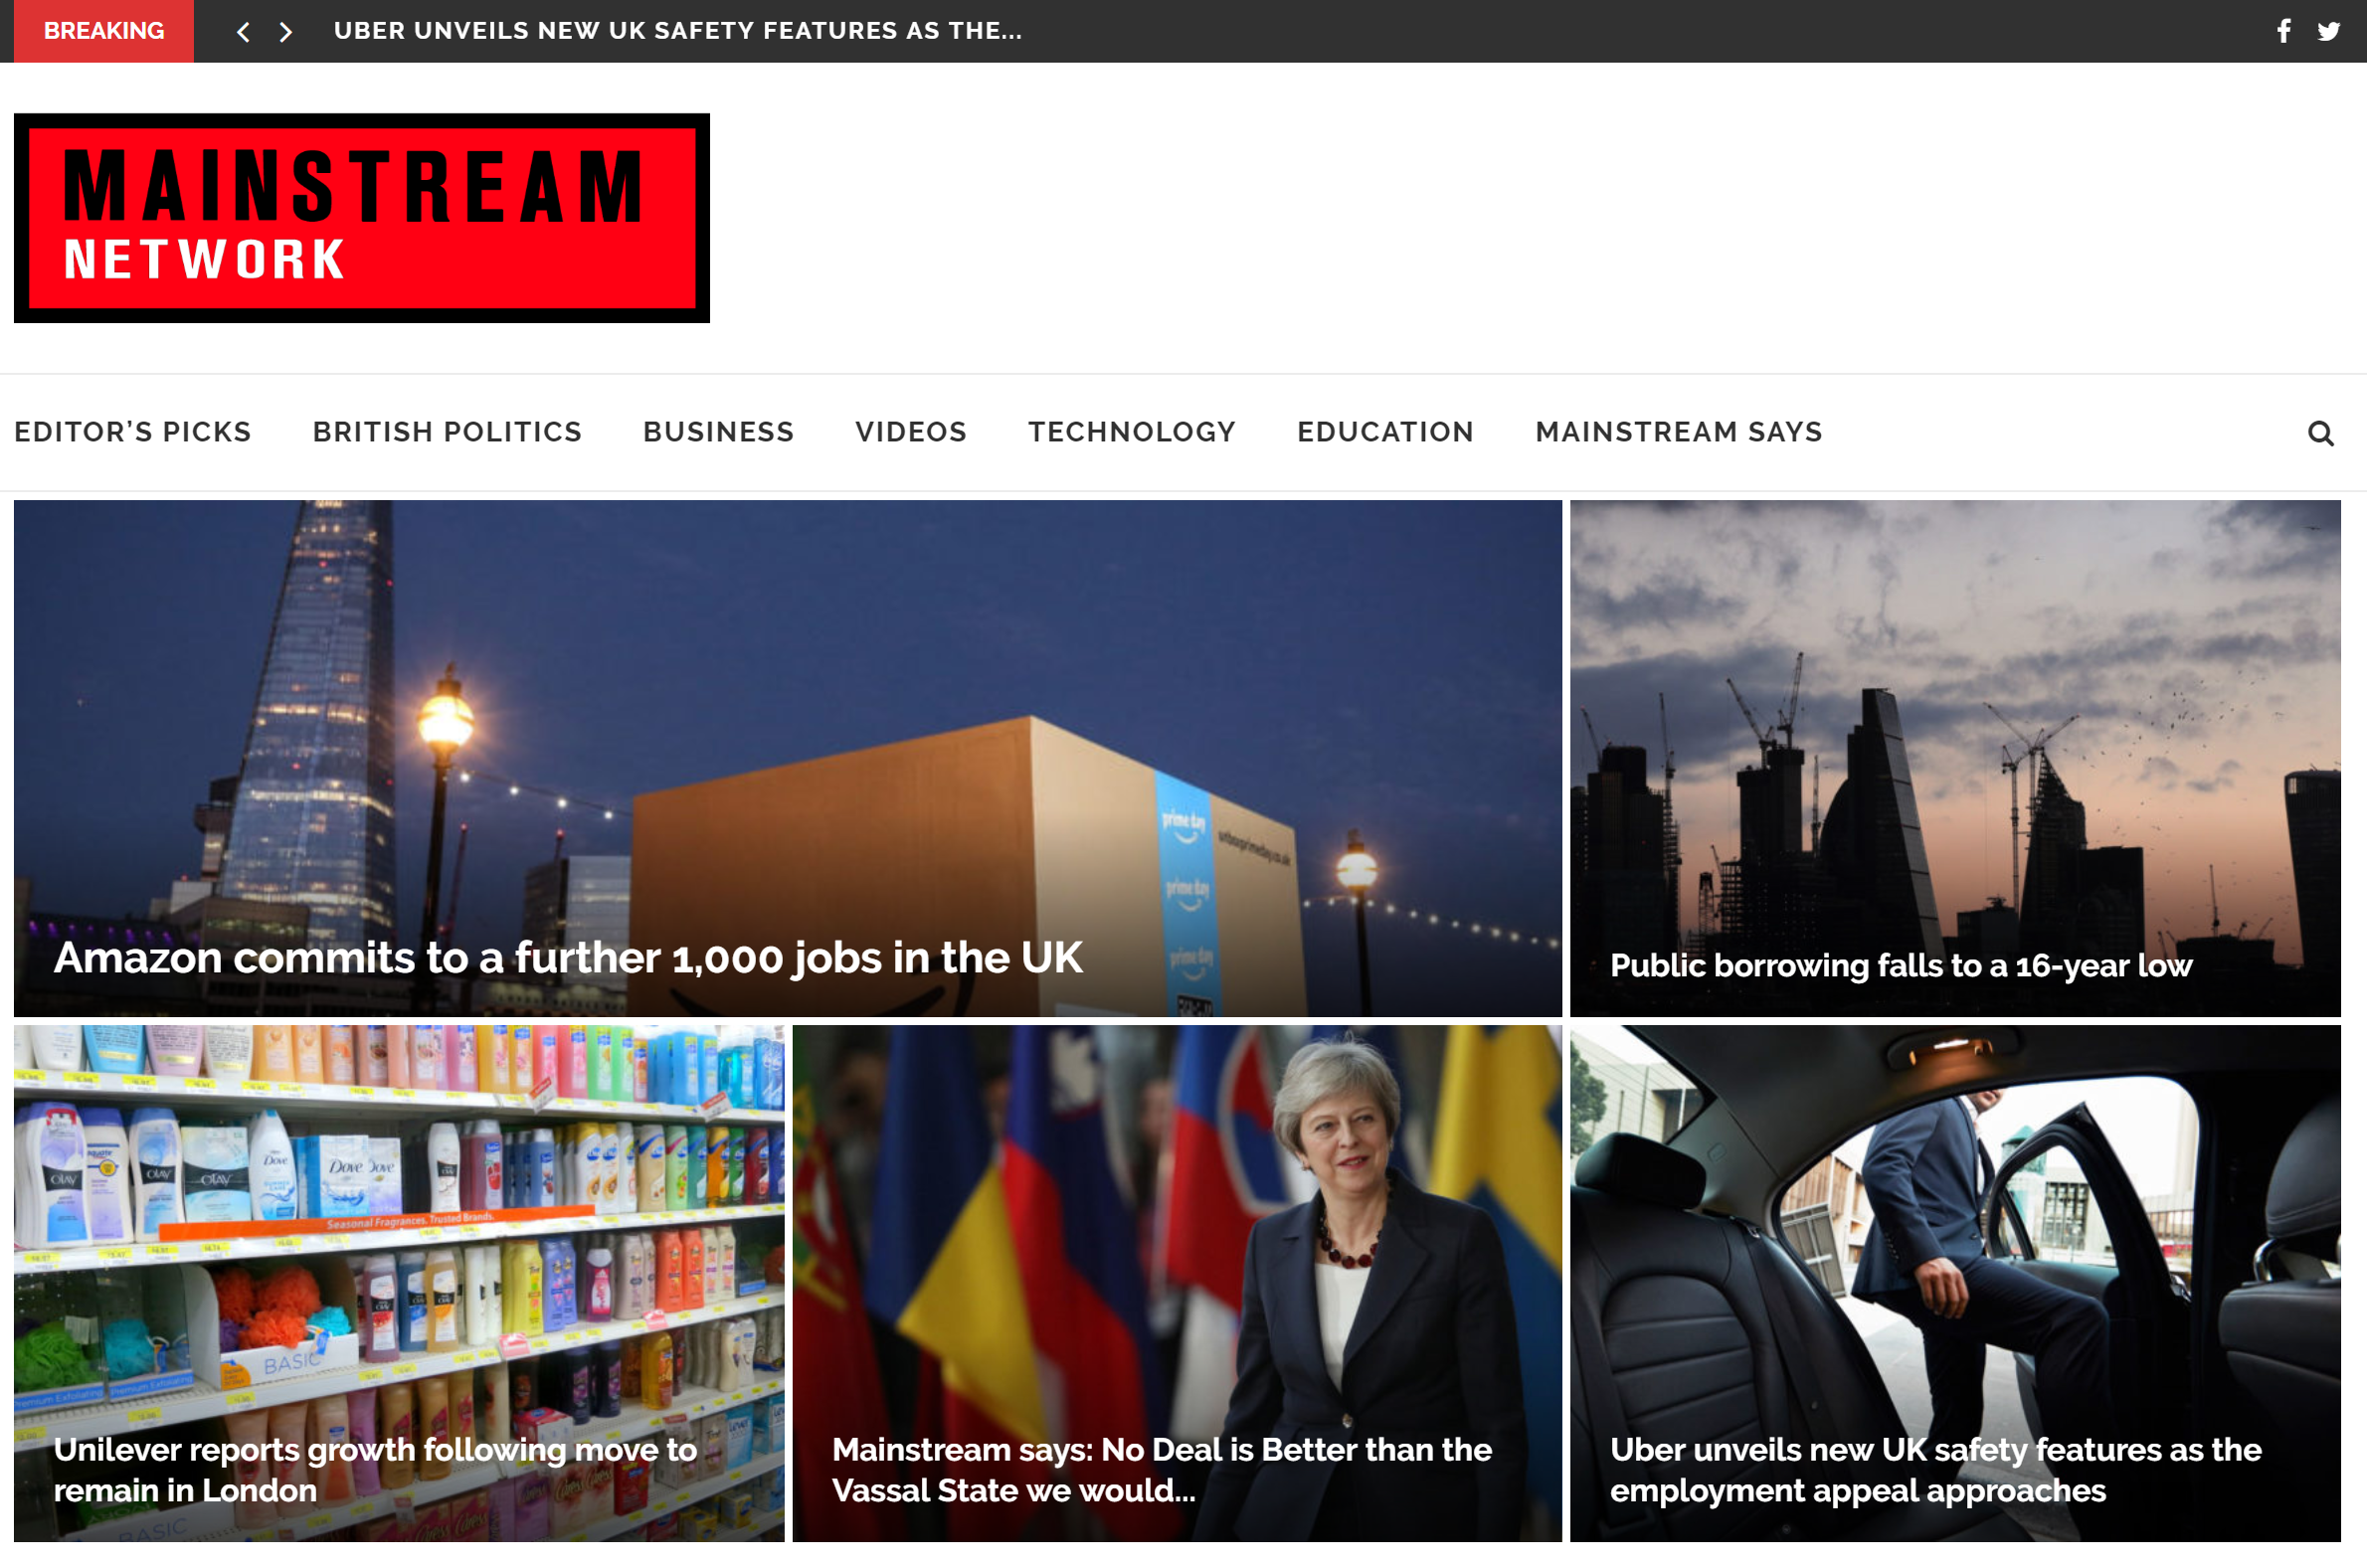 The home page of the Mainstream Network website, featuring stories about Brexit, the UK and Theresa May